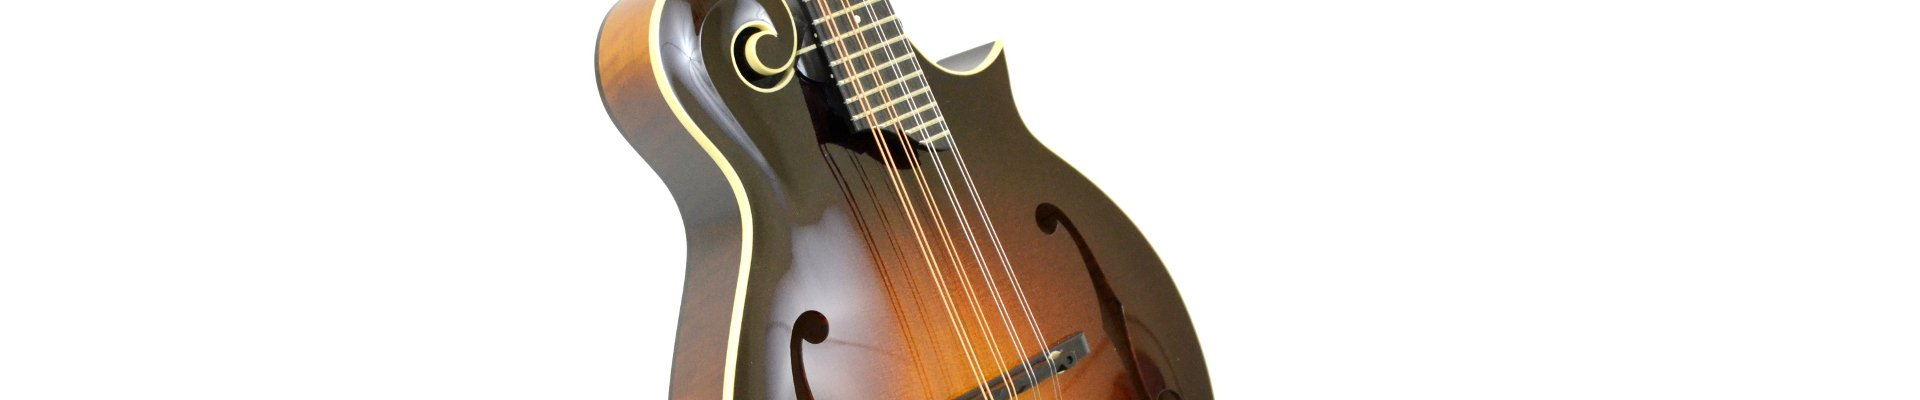 Collings Mandolins Banner